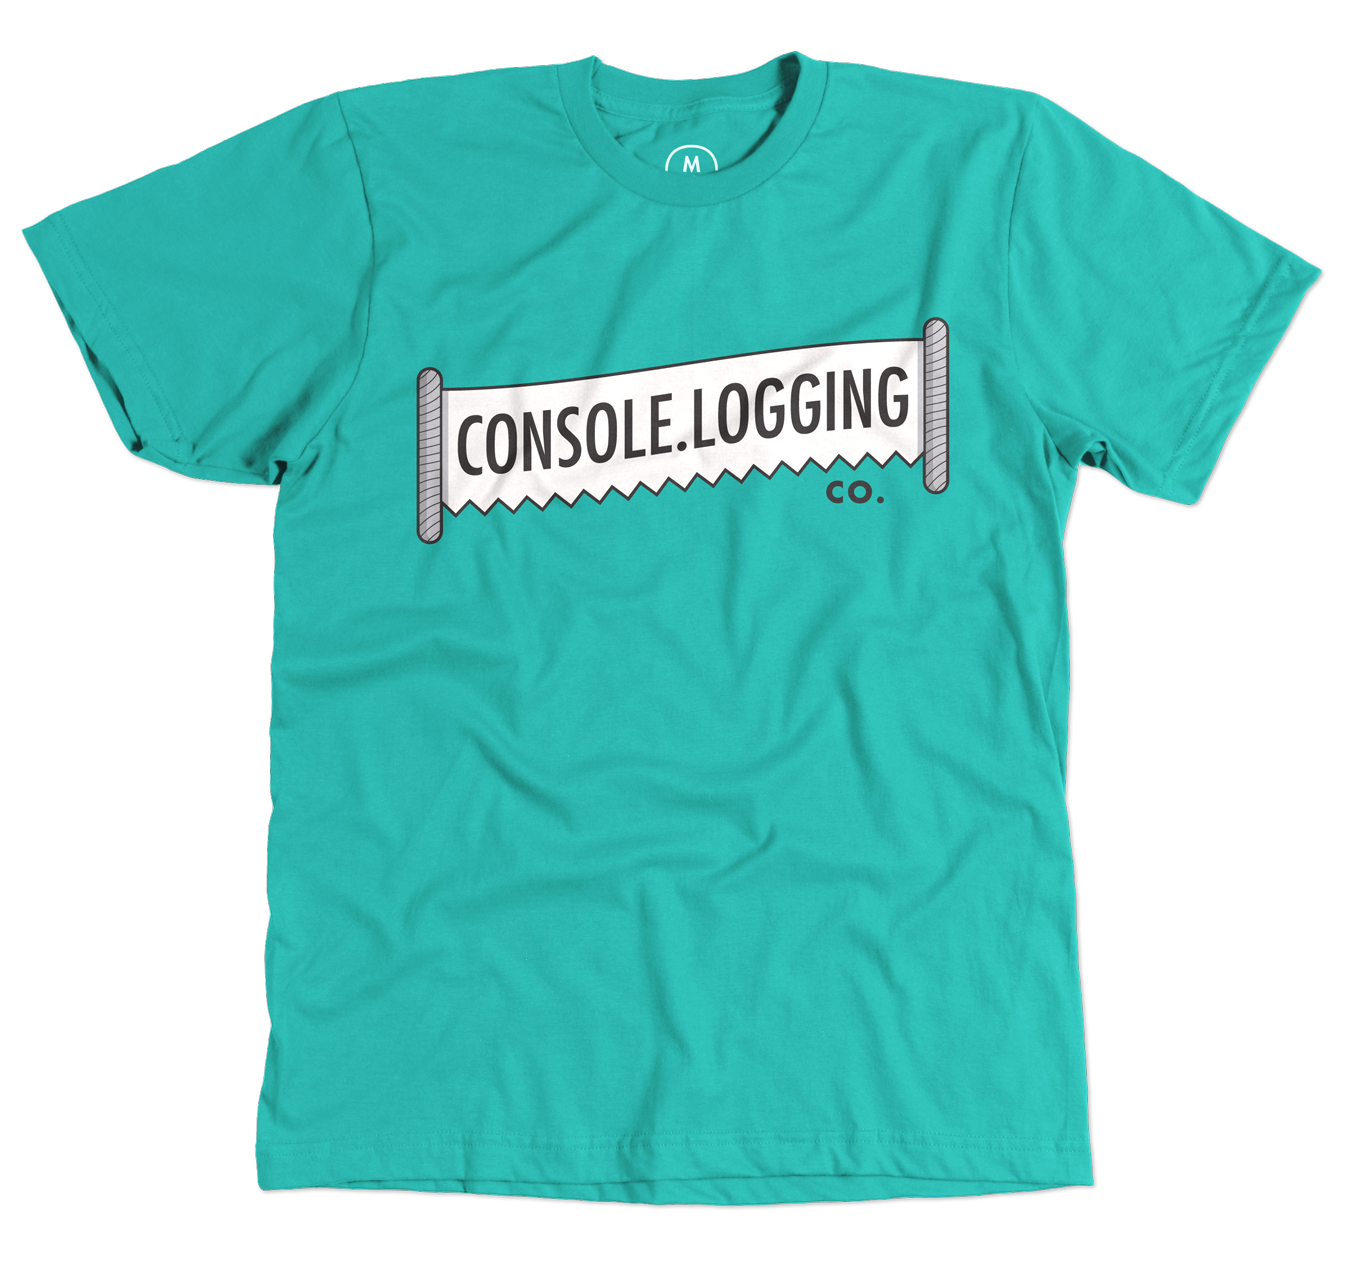 A Console.Logging Co. t-shirt is available through Cotton Bureau.